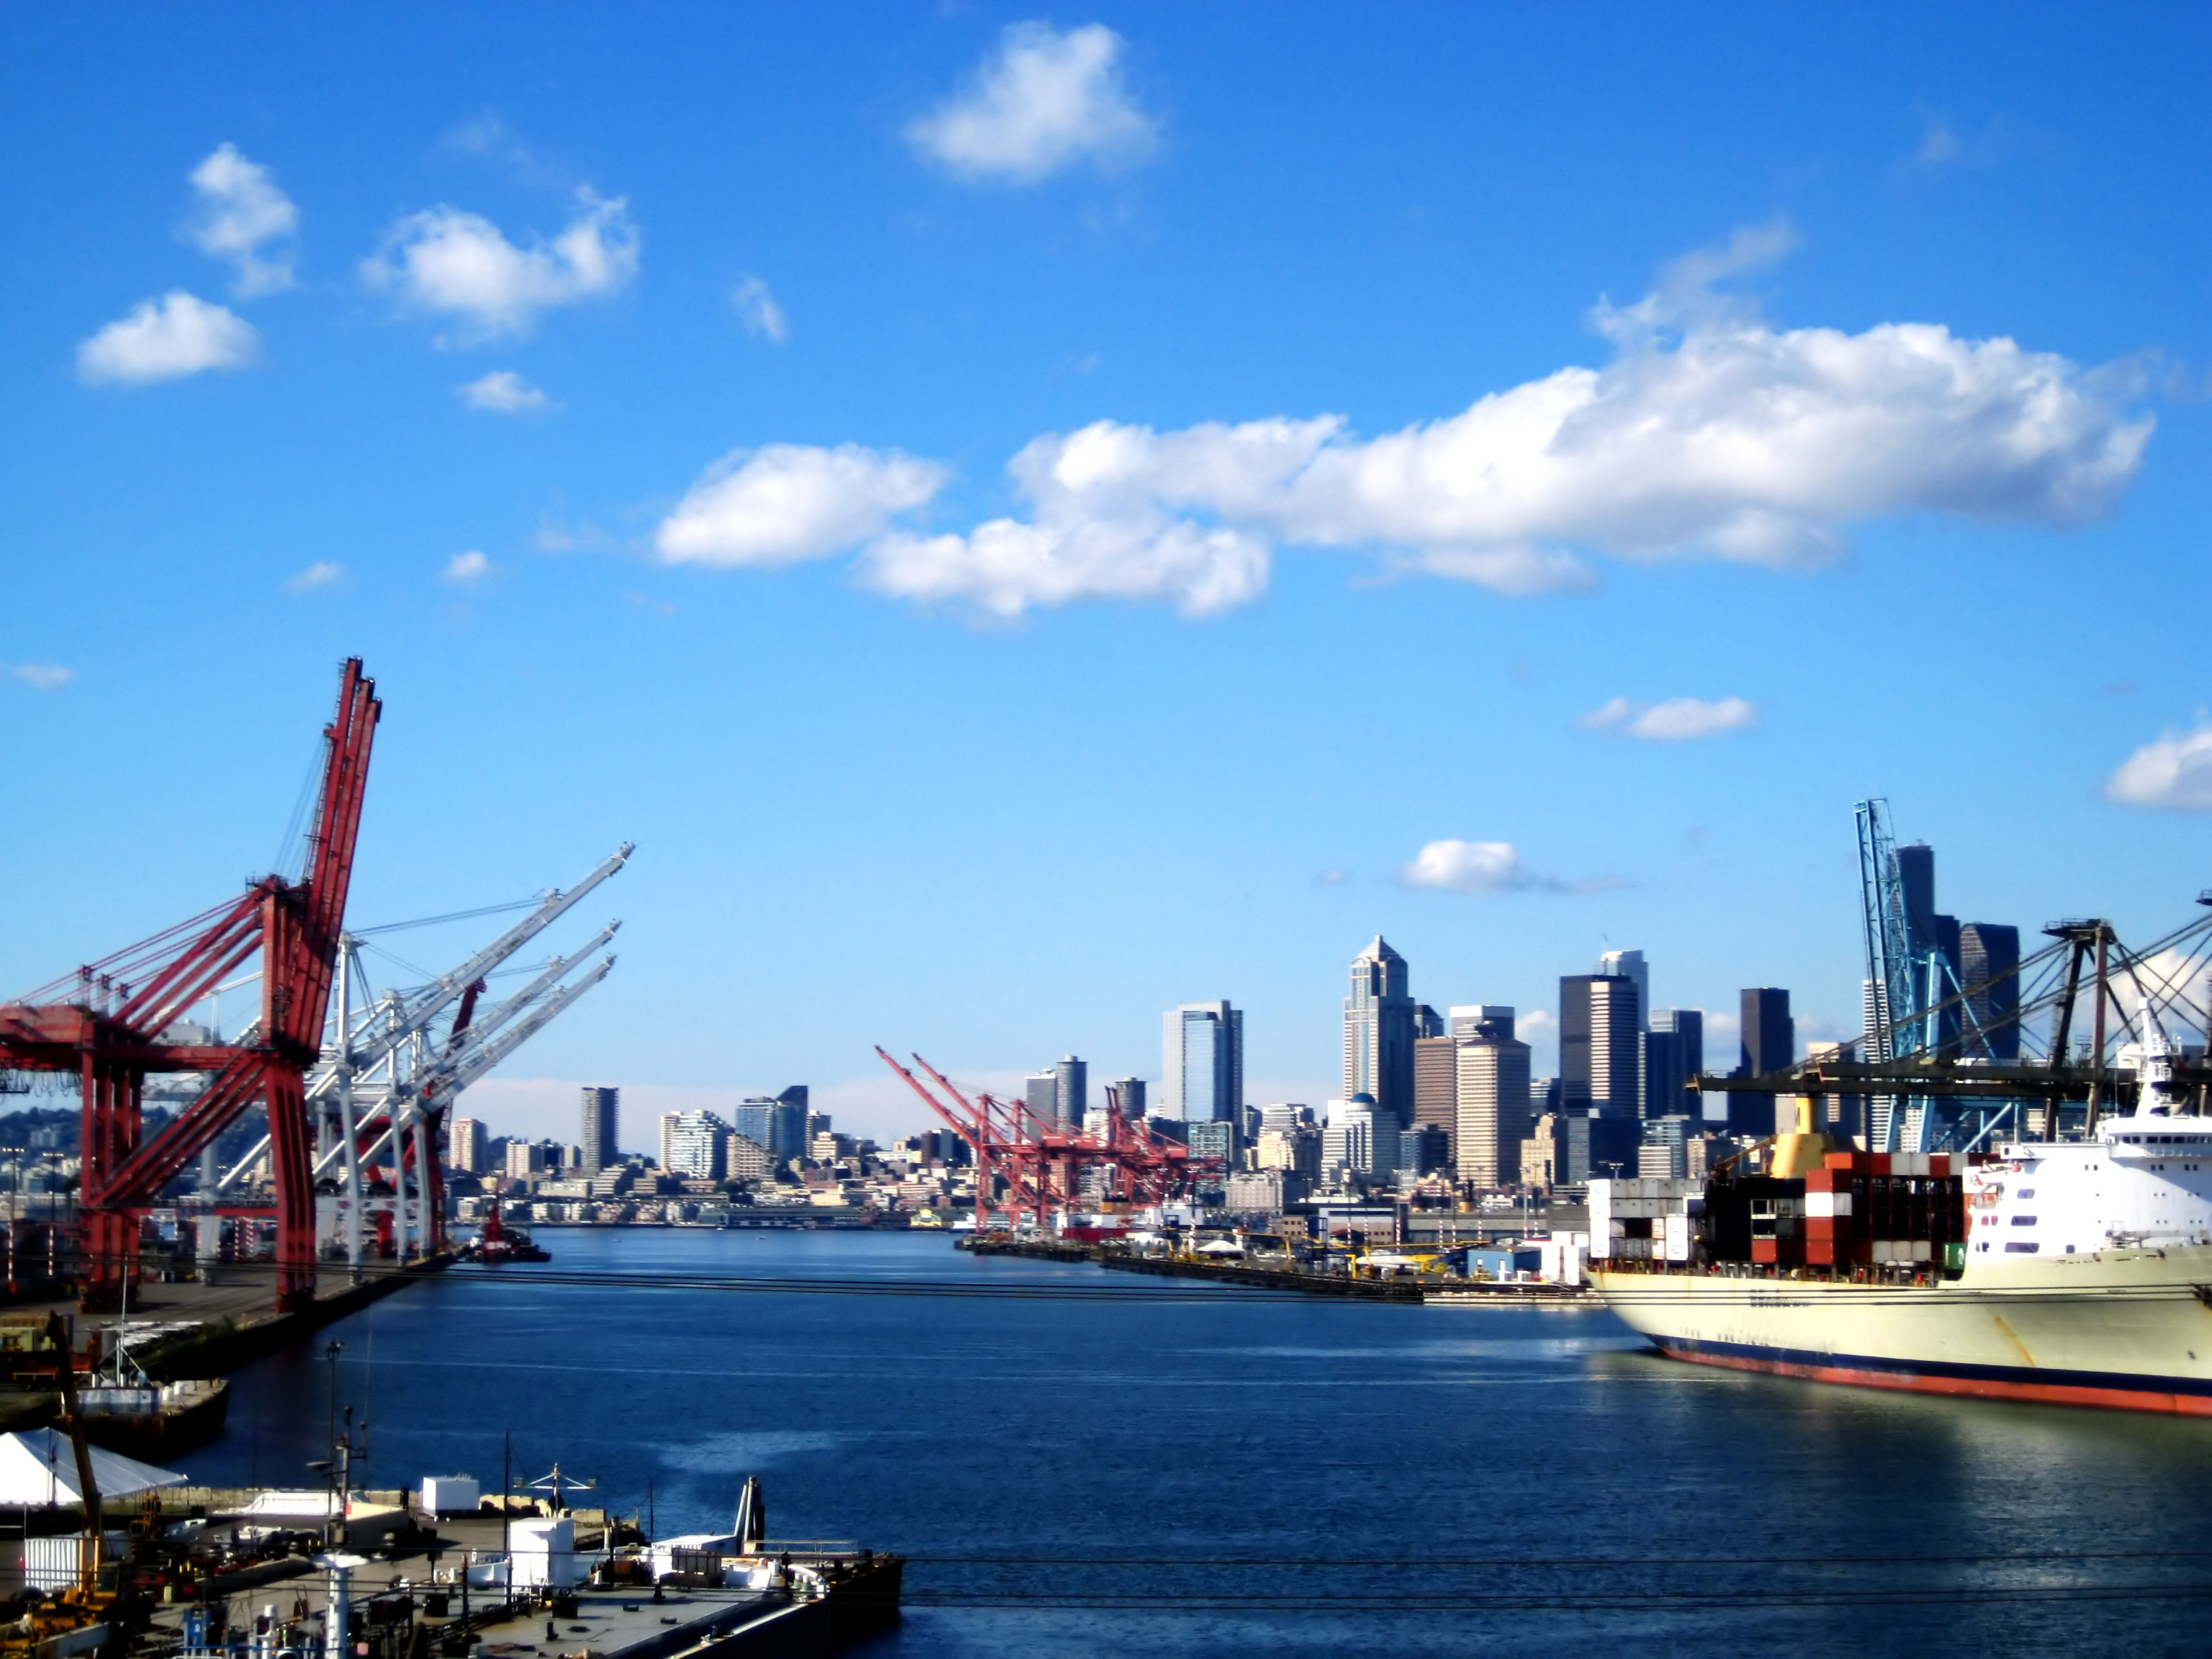 the port of seattle A jury awarded $16 million to two former port of seattle employees it determined were wrongfully fired, among the biggest verdicts of its kind in state history a settlement between the plaintiffs and the port caps damages at $8.